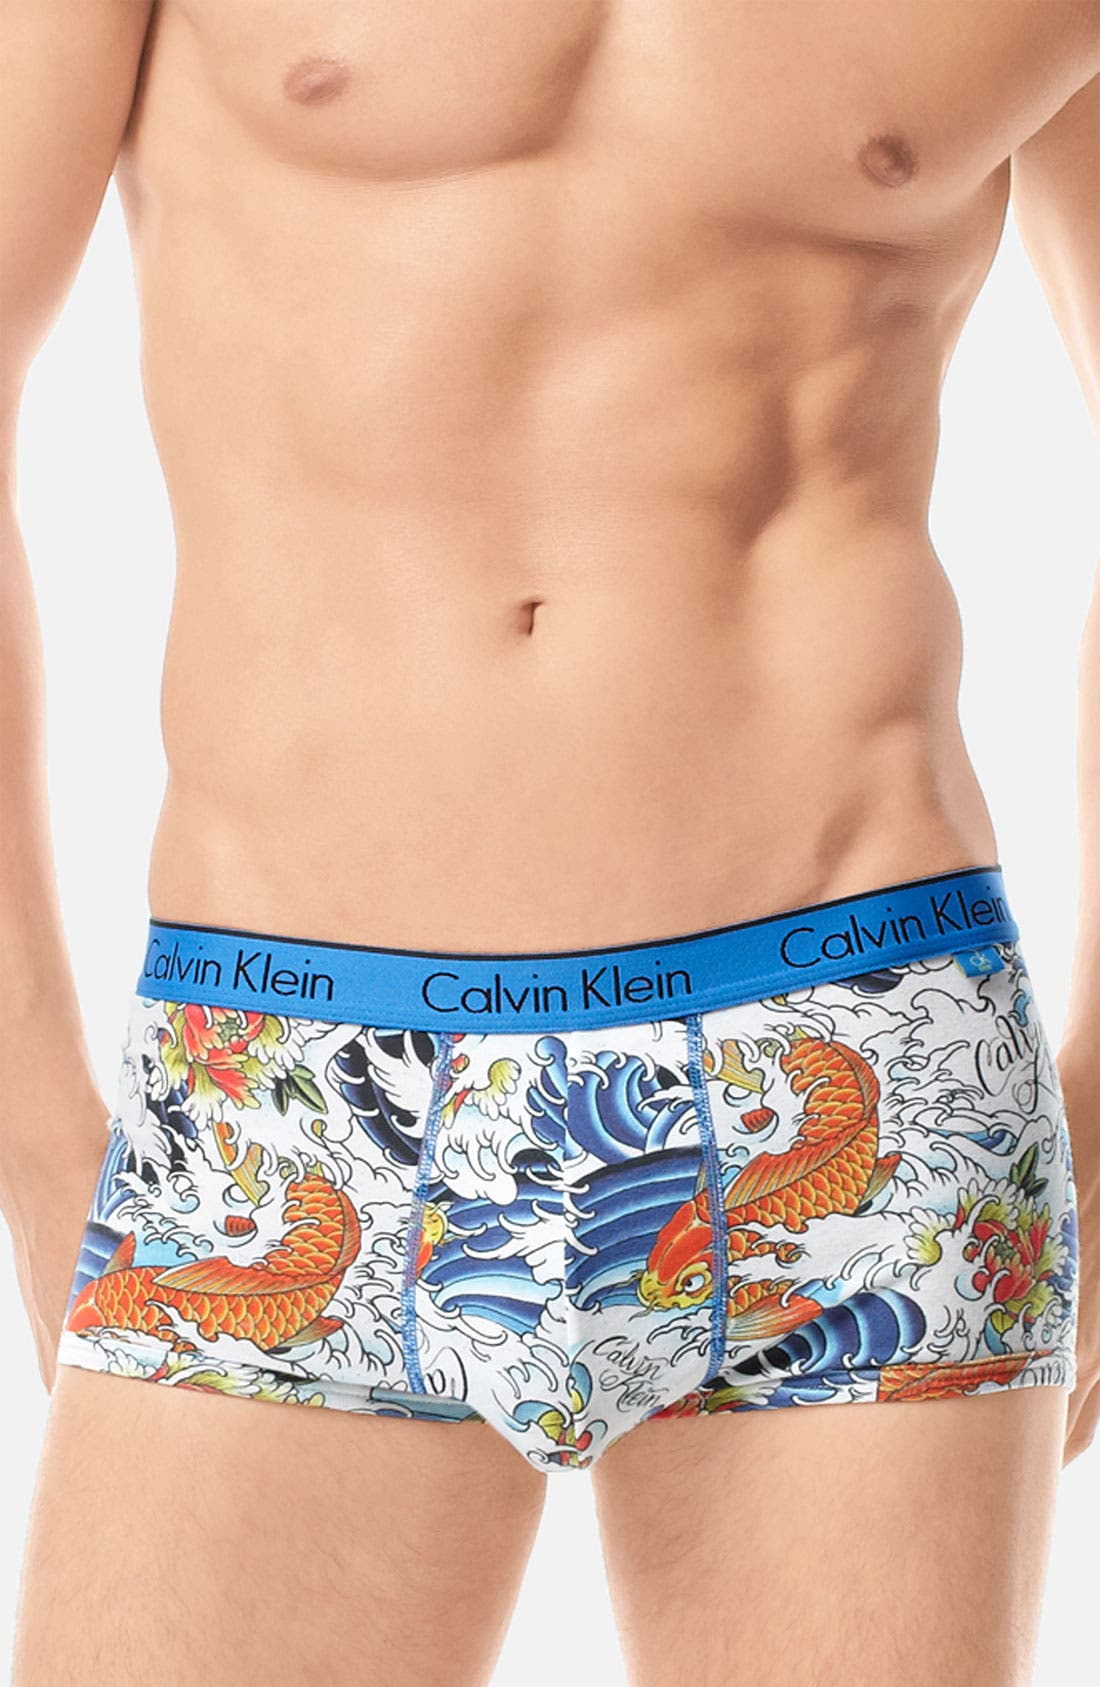 Main Image - Calvin Klein 'ck one - Tattoo' Low Rise Trunks